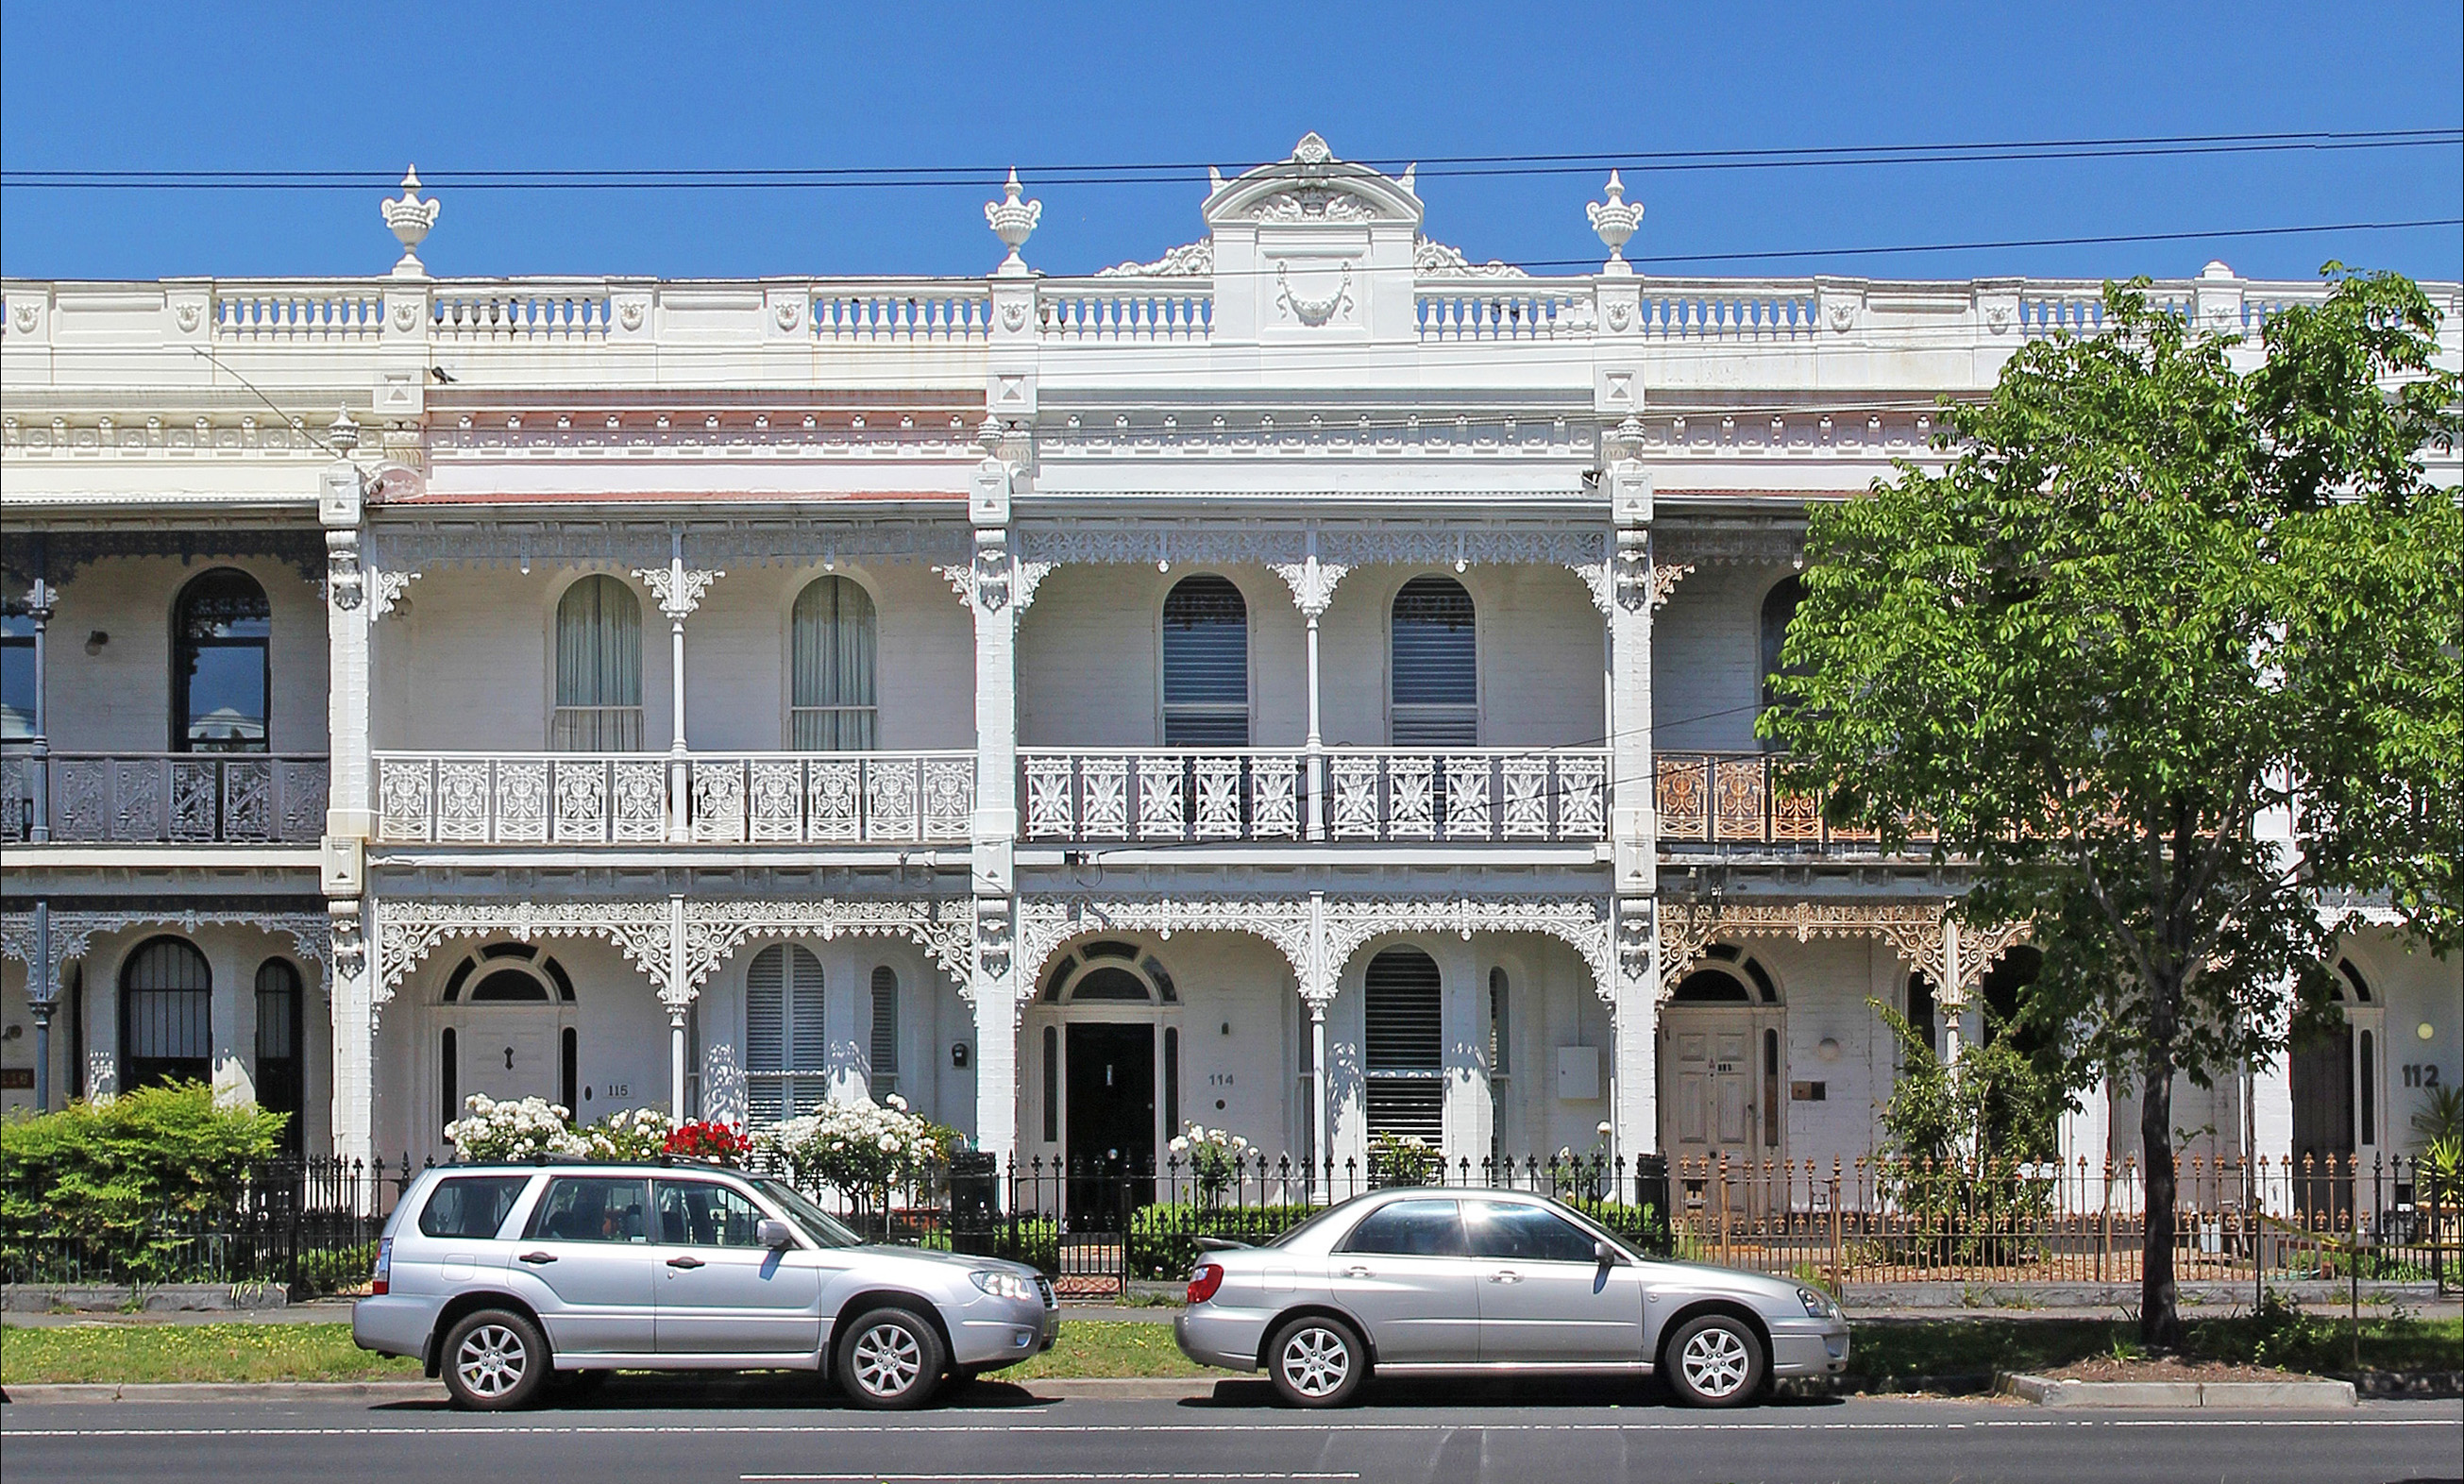 File:Victorian terrace on canterbury road, Middle Park.jpg